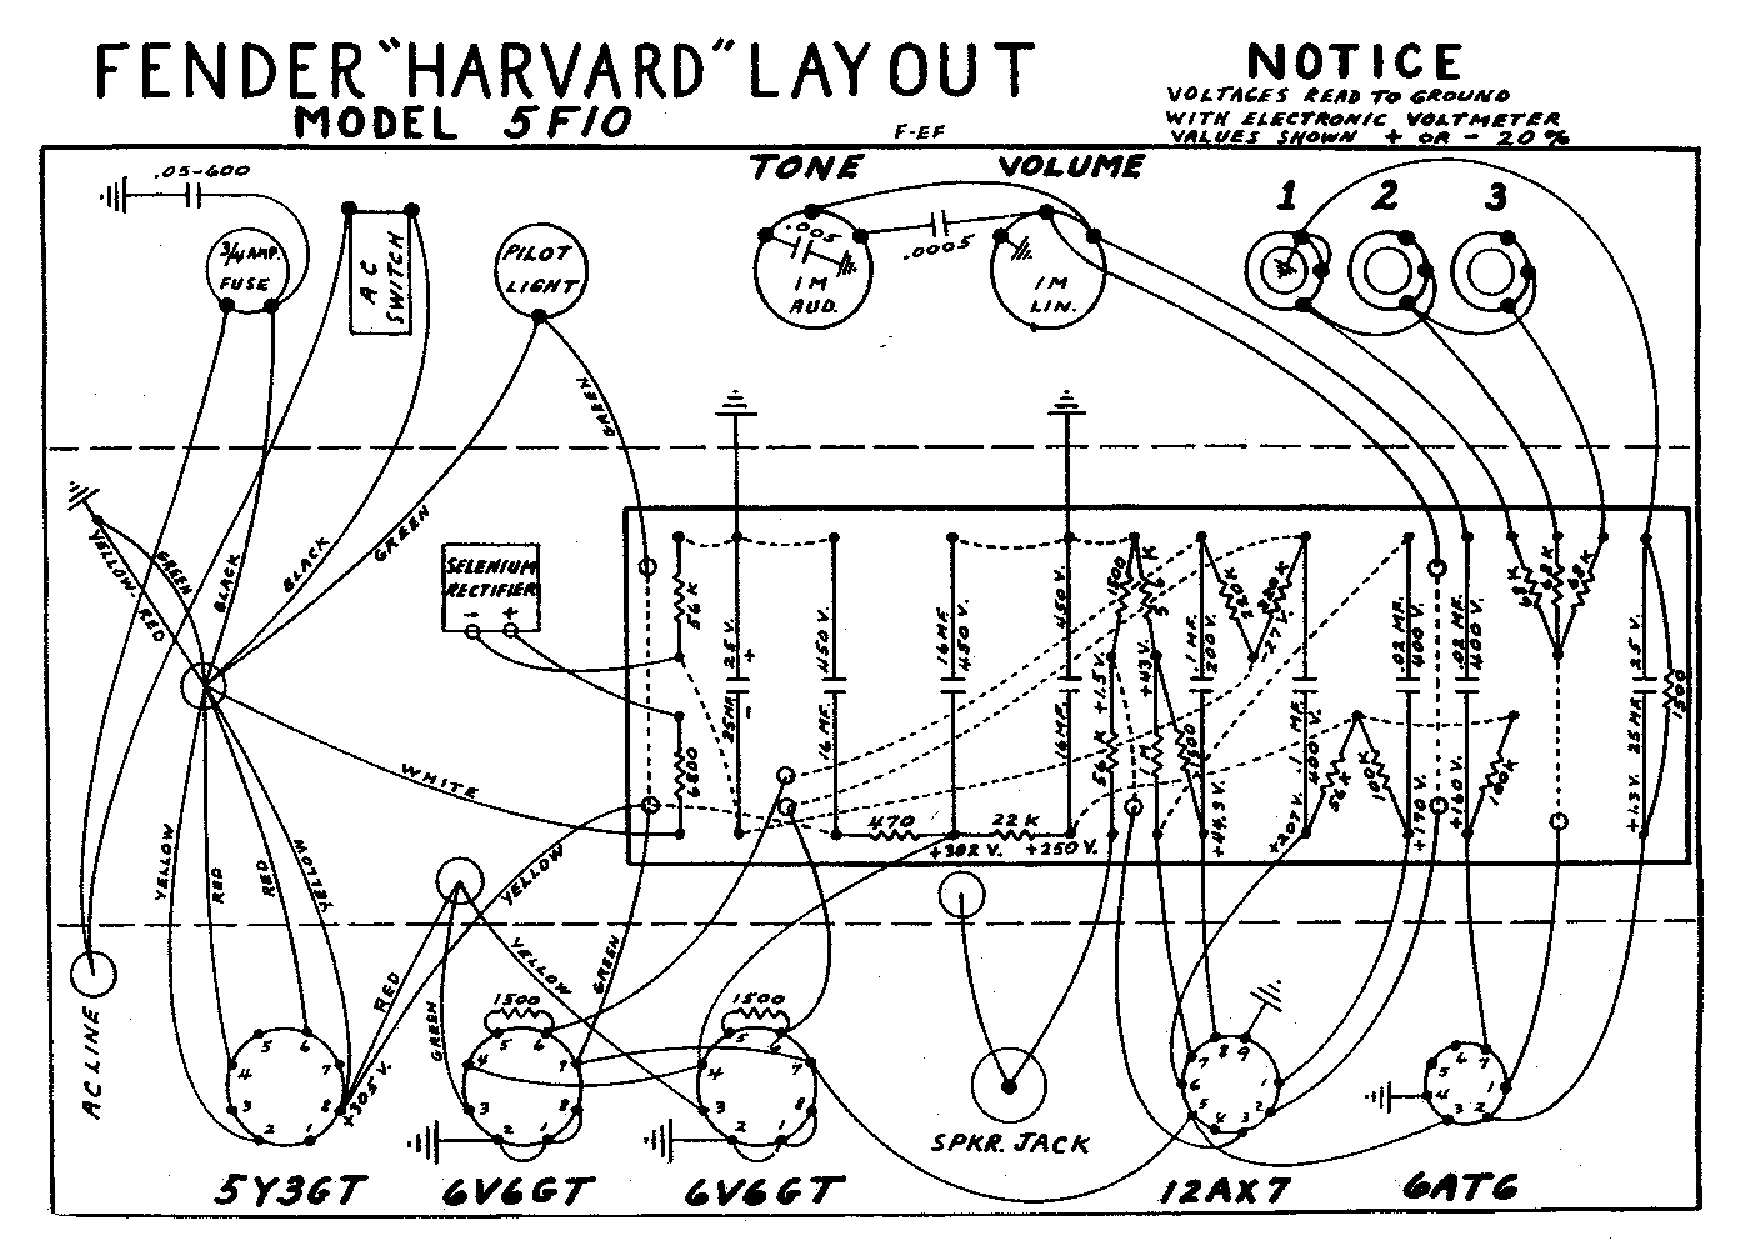 FENDER HARVARD-5F10-LAYOUT Service Manual download